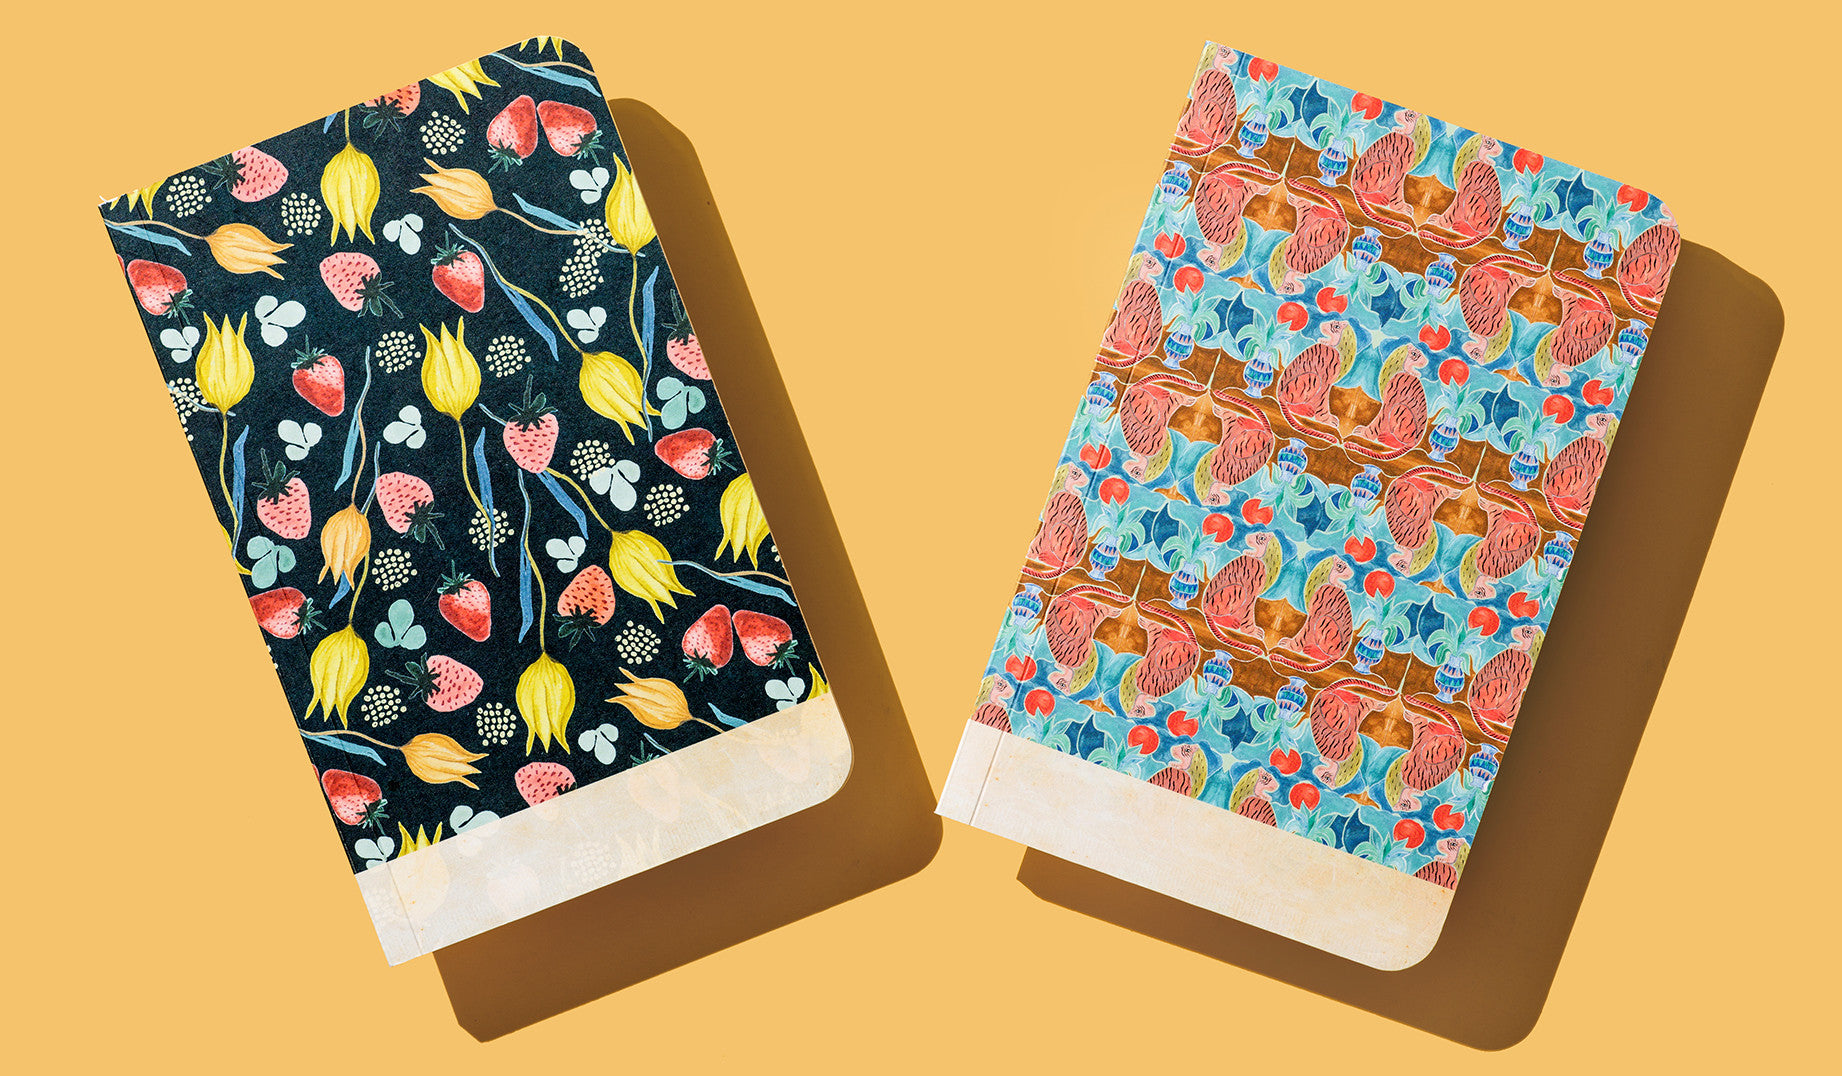 Here at Paper Chase, we love a good mix of color and pattern. So it comes as no surprise that we would be fans of designer Justina Blakeney. Her signature style has spawned a loyal following among design aficionados and just about anyone who appreciates a bohemian aesthetic. We knew her work would make for beautiful paper goods — so we teamed up with the New York Times bestselling author to create two signature notebooks, each featuring her distinct, hand-drawn patterns. Photography by Katrina Dickson